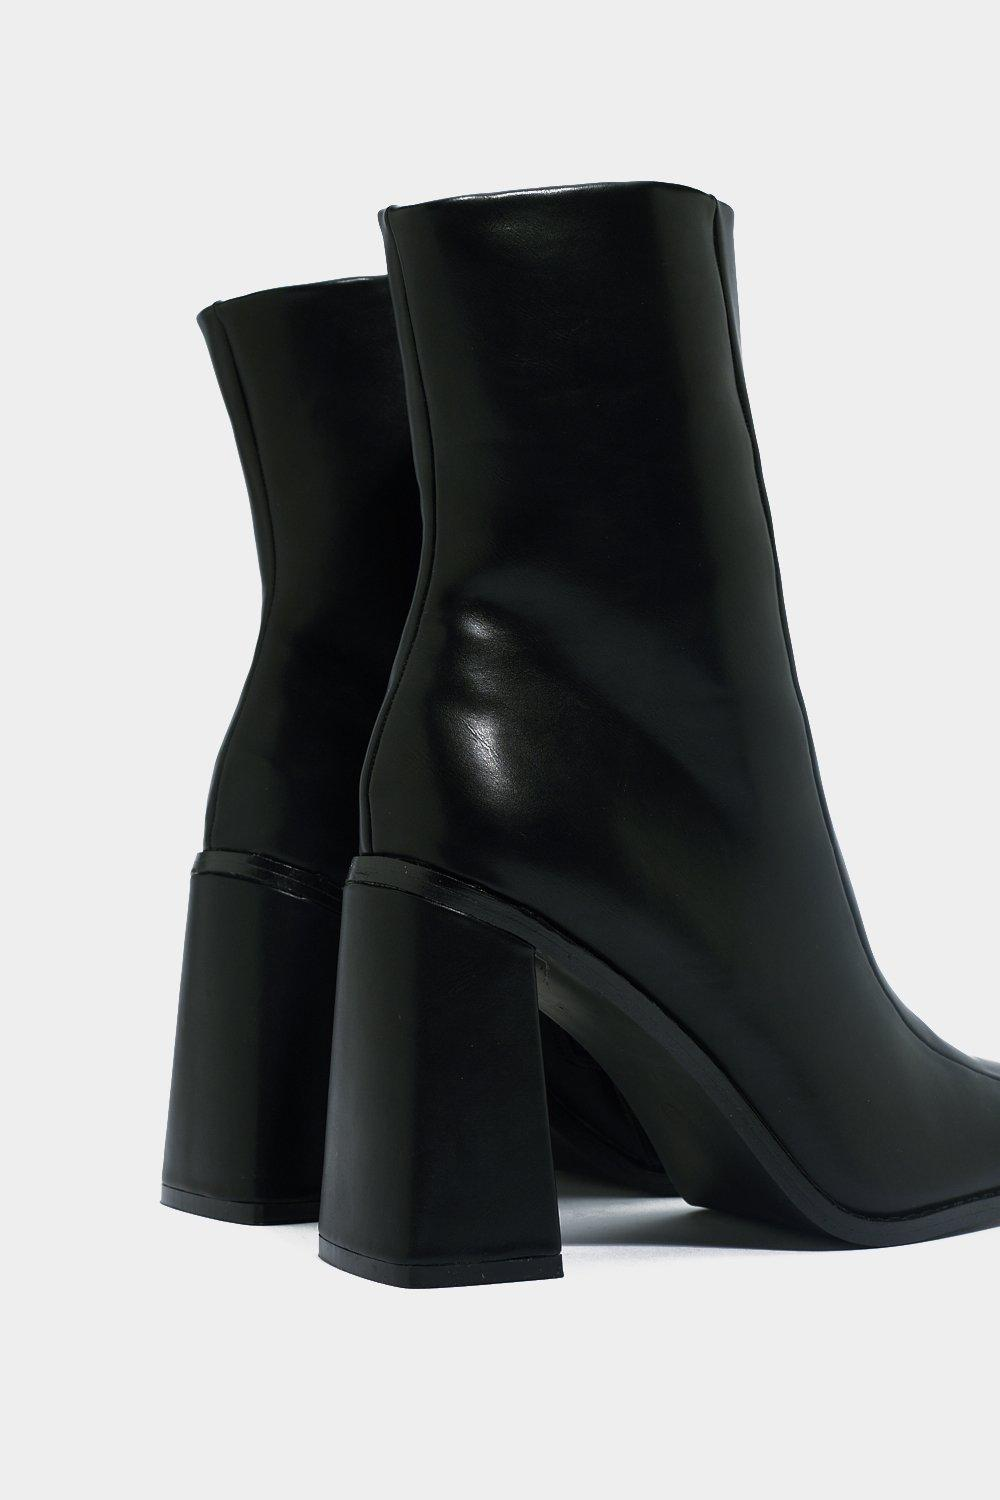 33d4497843103 Square Up Sock Boot | Shop Clothes at Nasty Gal!